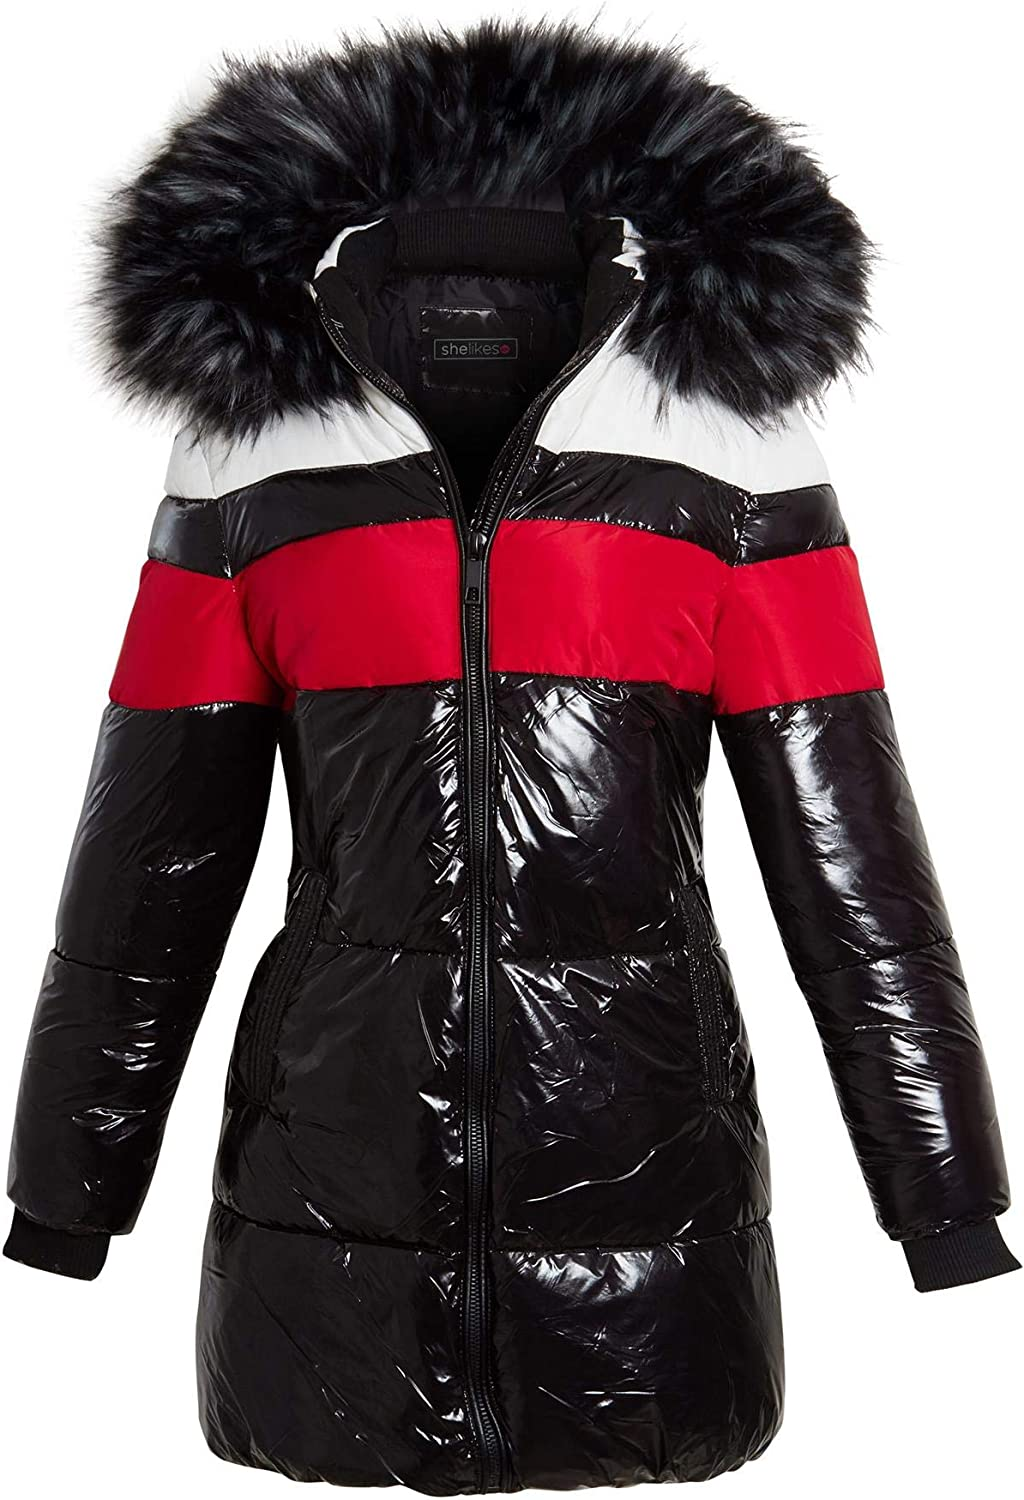 Shelikes Womens High shine Wet Look Faux Fur Parka Coat Size 10 8 12 14 16 Black Red